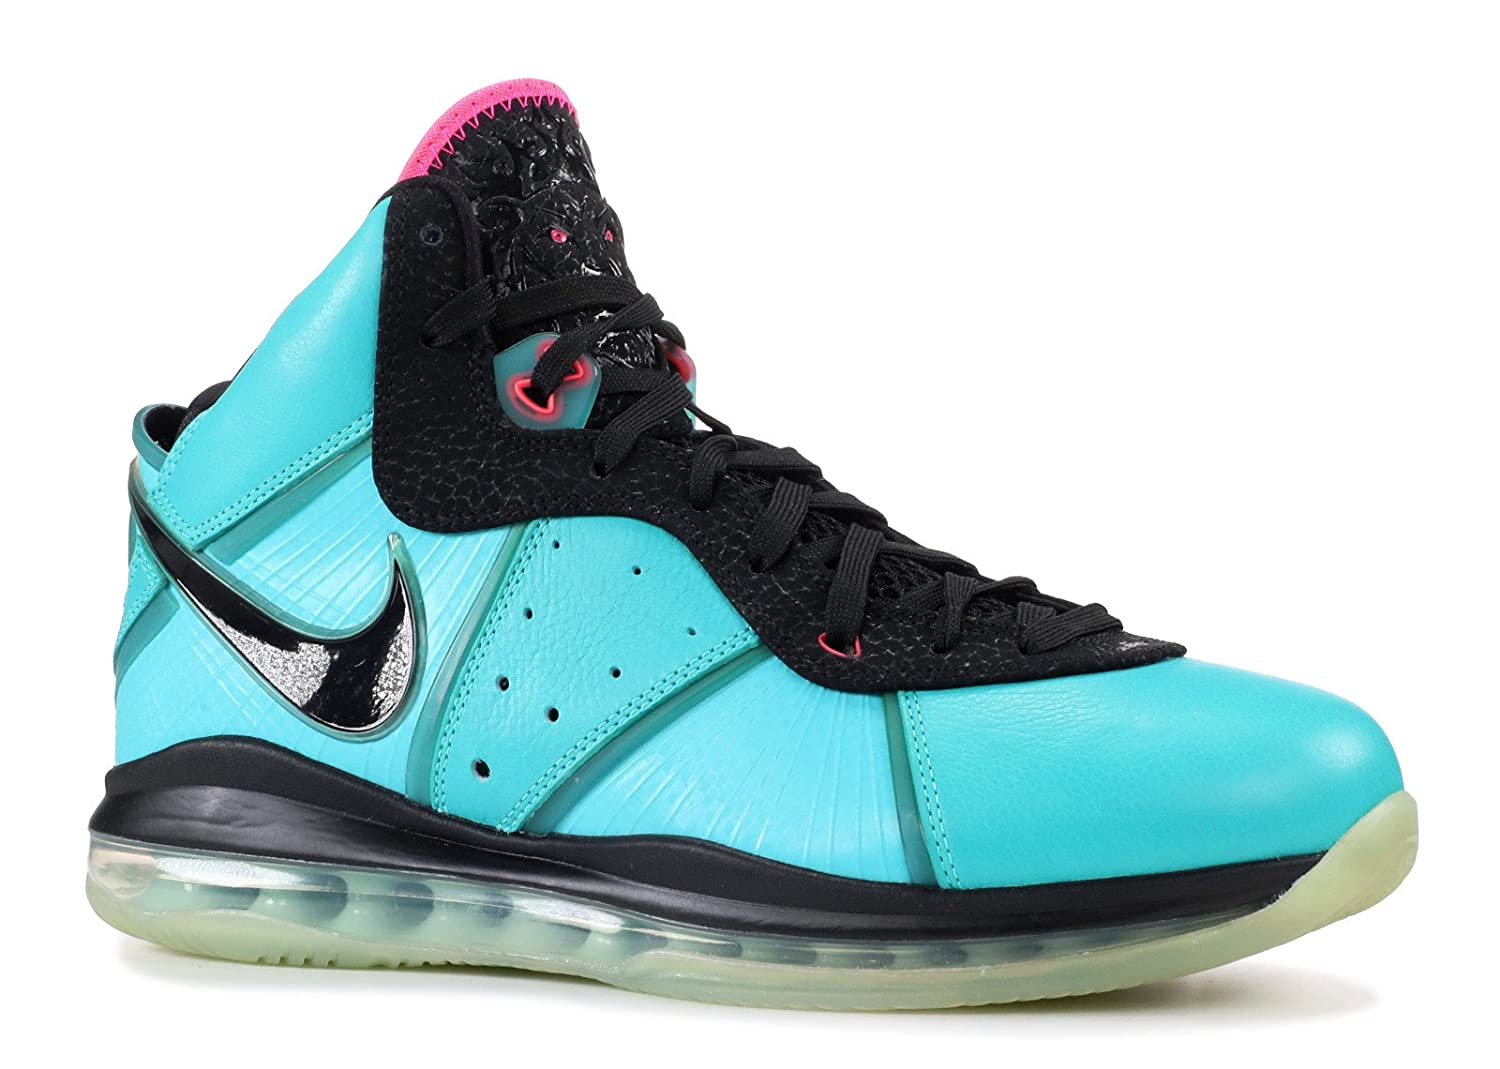 [NIKE - ナイキ] LEBRON 8 'SOUTH BEACH' - 417098-401 - SIZE 9 (メンズ) B06XGJF22C